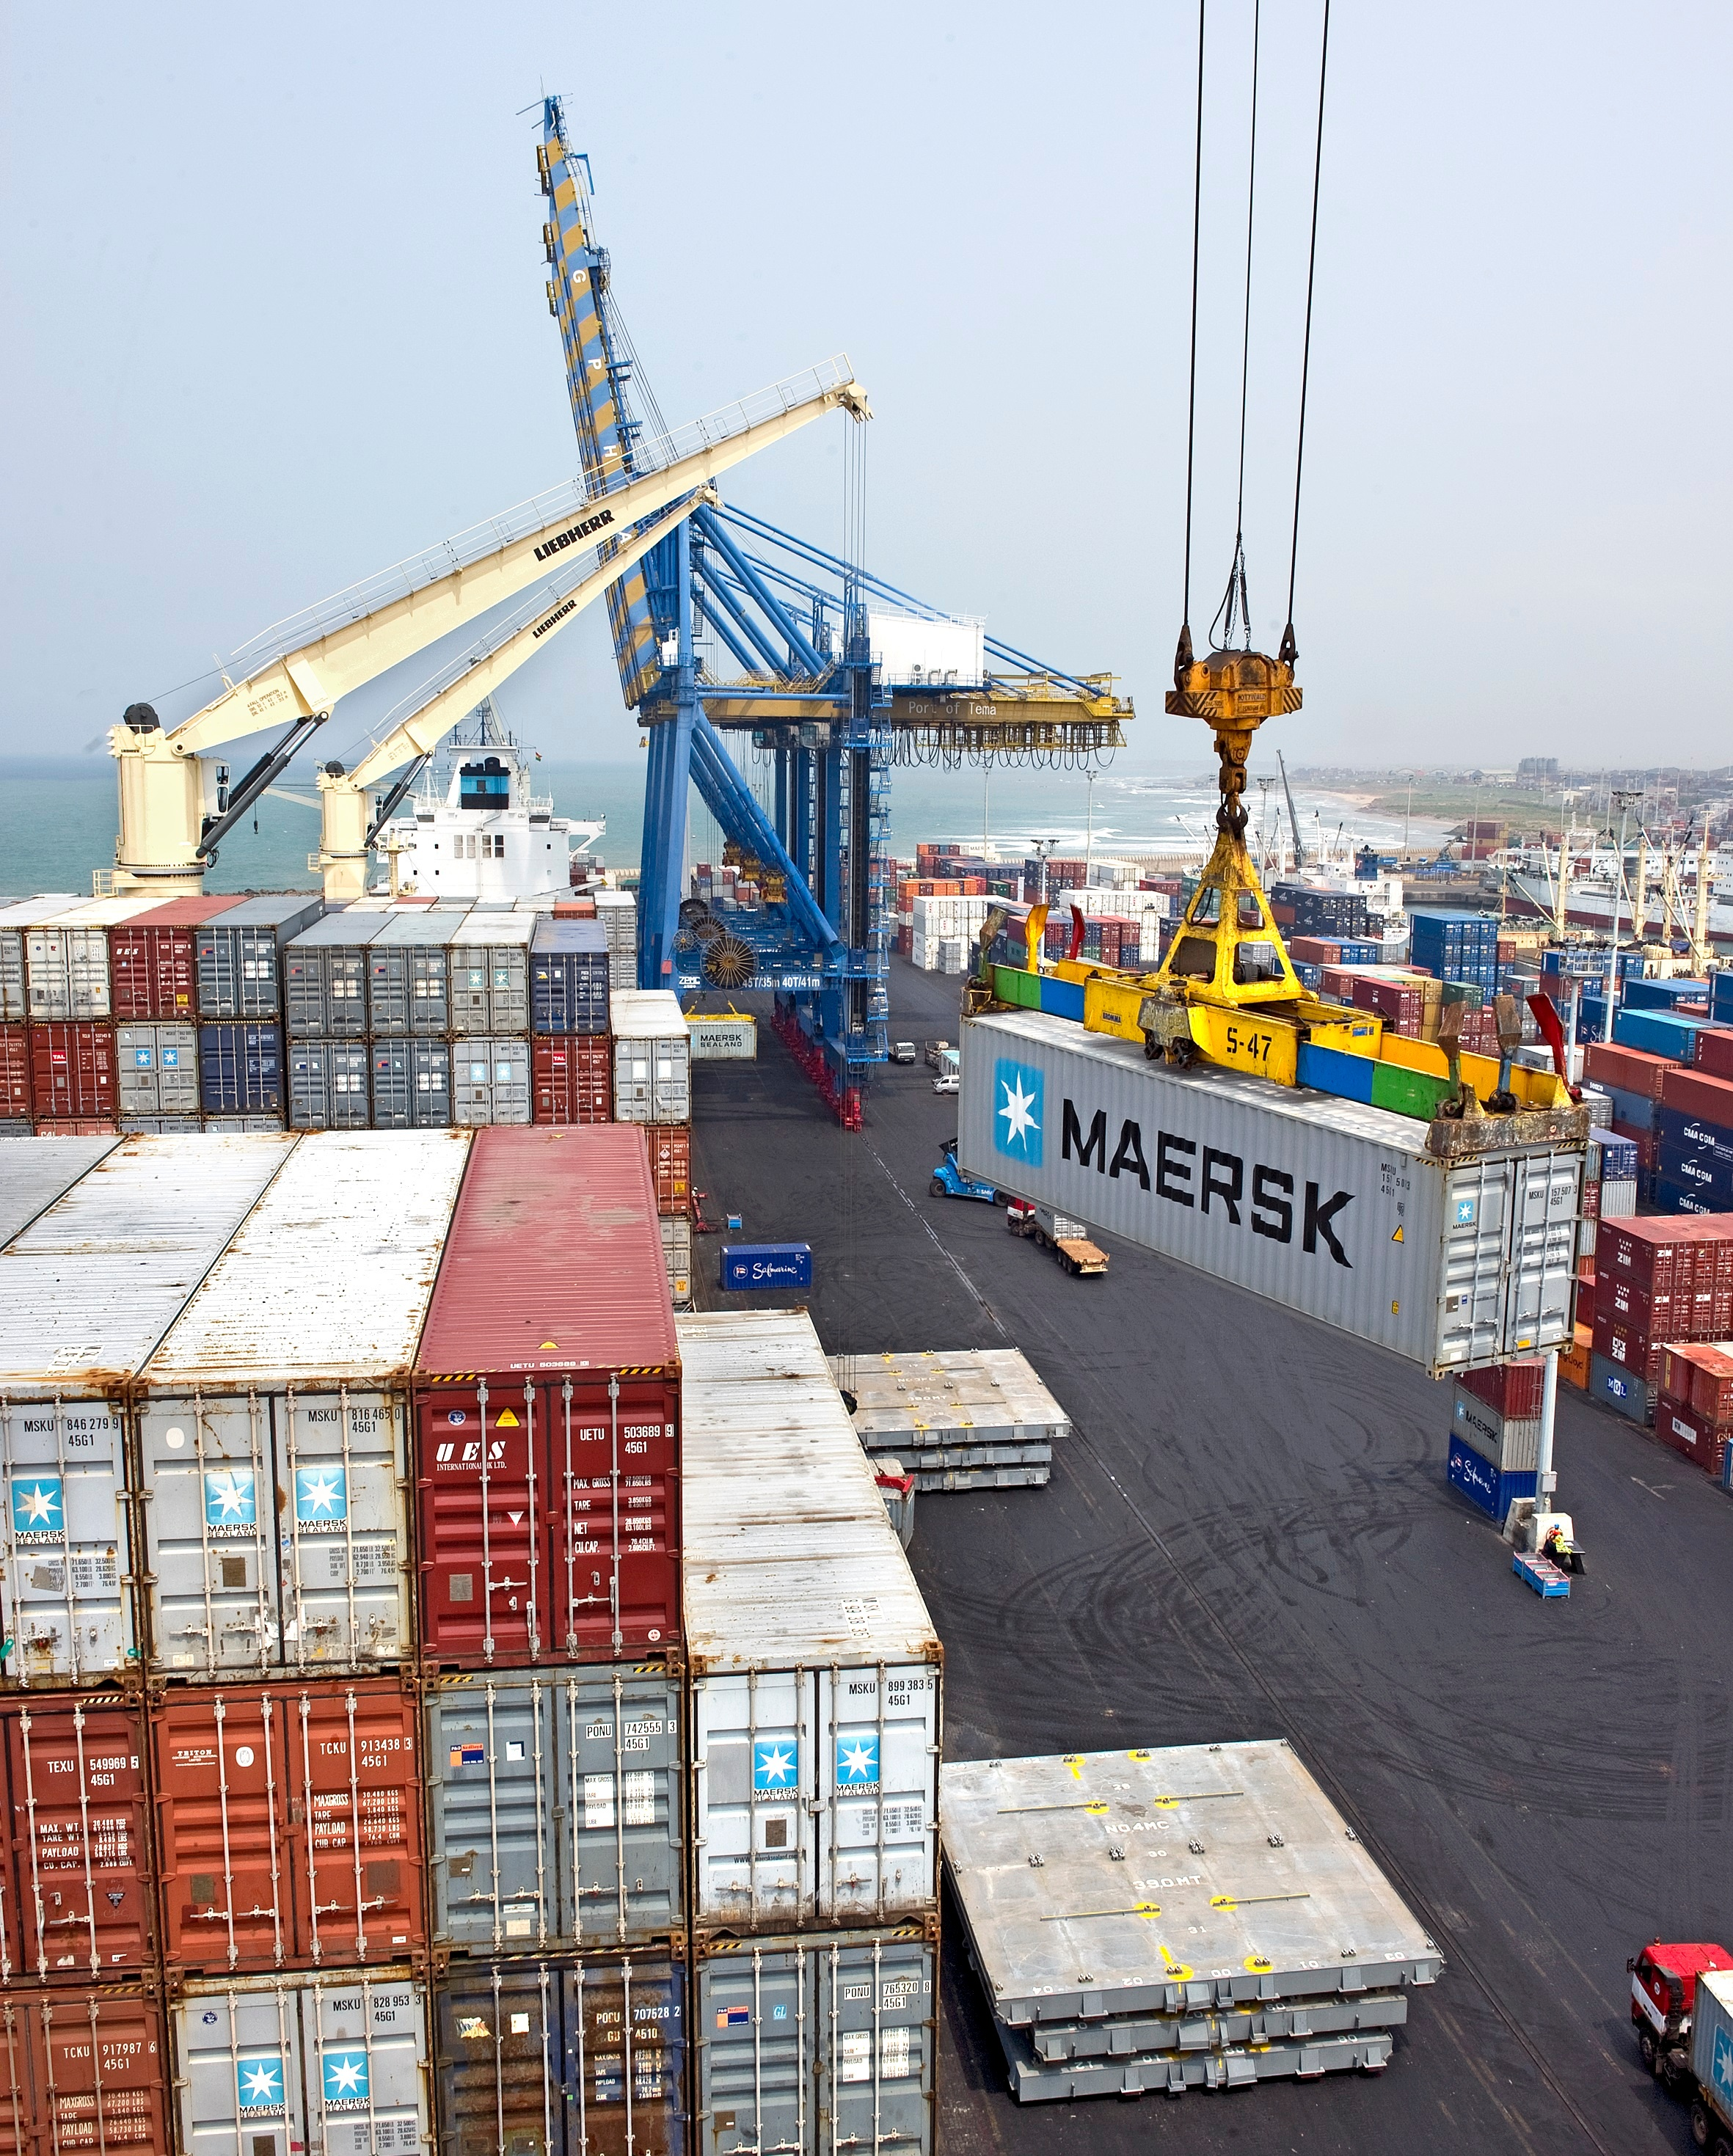 Over_Maersk_en_content_marketing_in_containerformaat_5.jpg